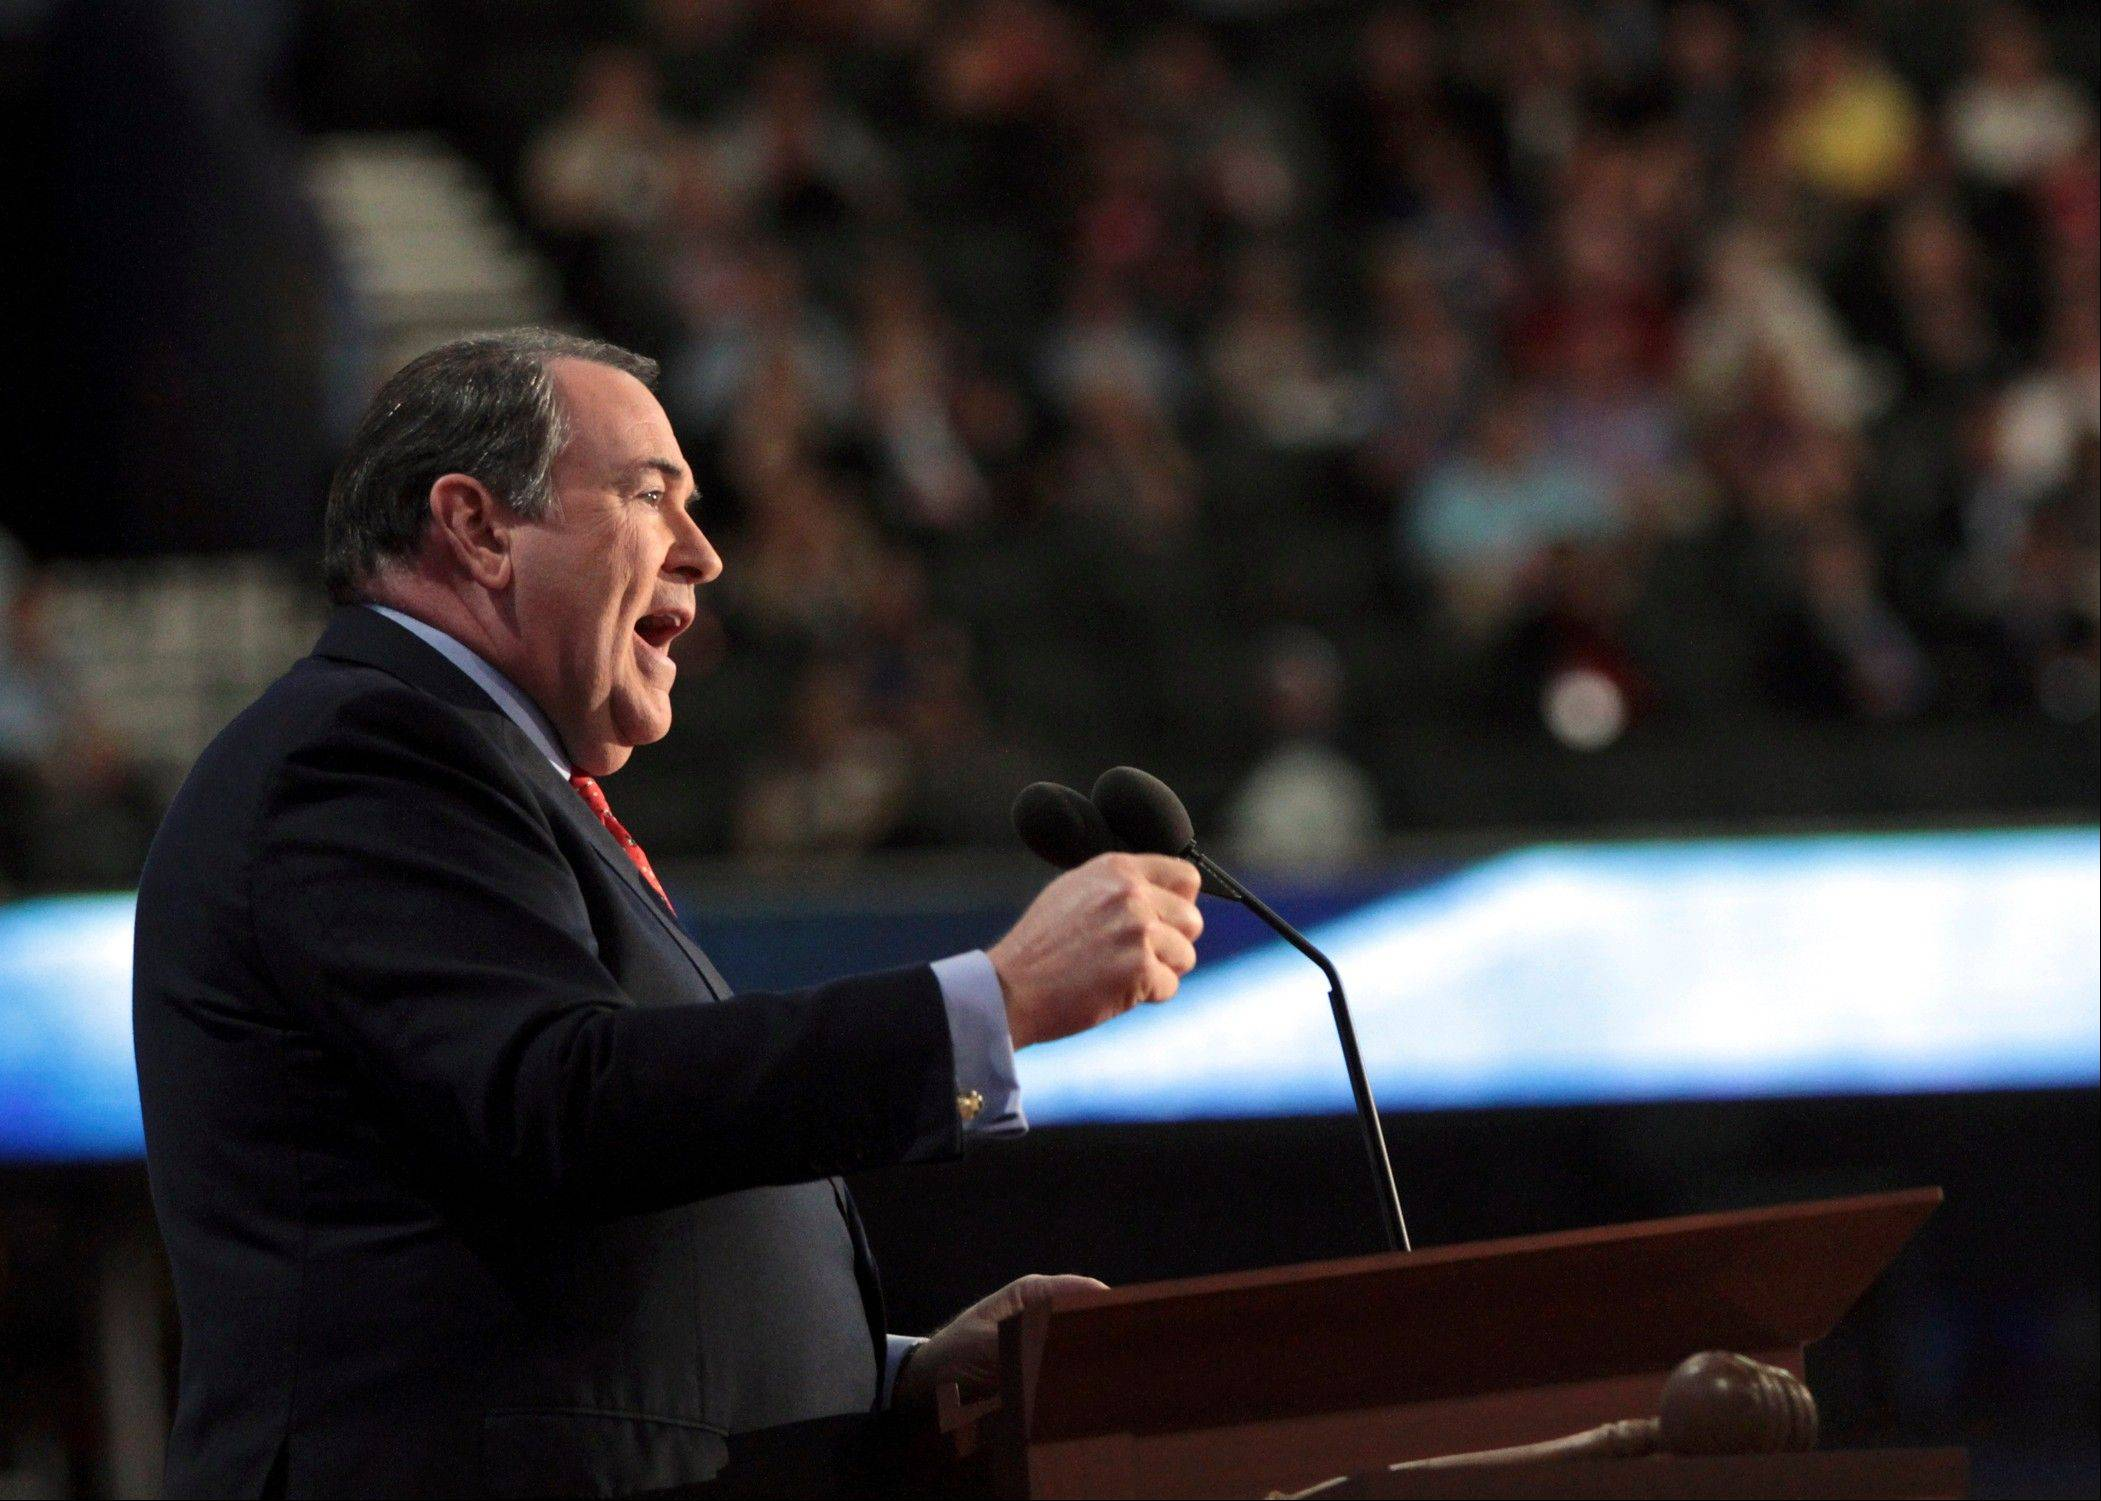 Former governor of Arkansas Mike Huckabee addresses the Republican National Convention in Tampa, Fla., on Wednesday, Aug. 29, 2012.